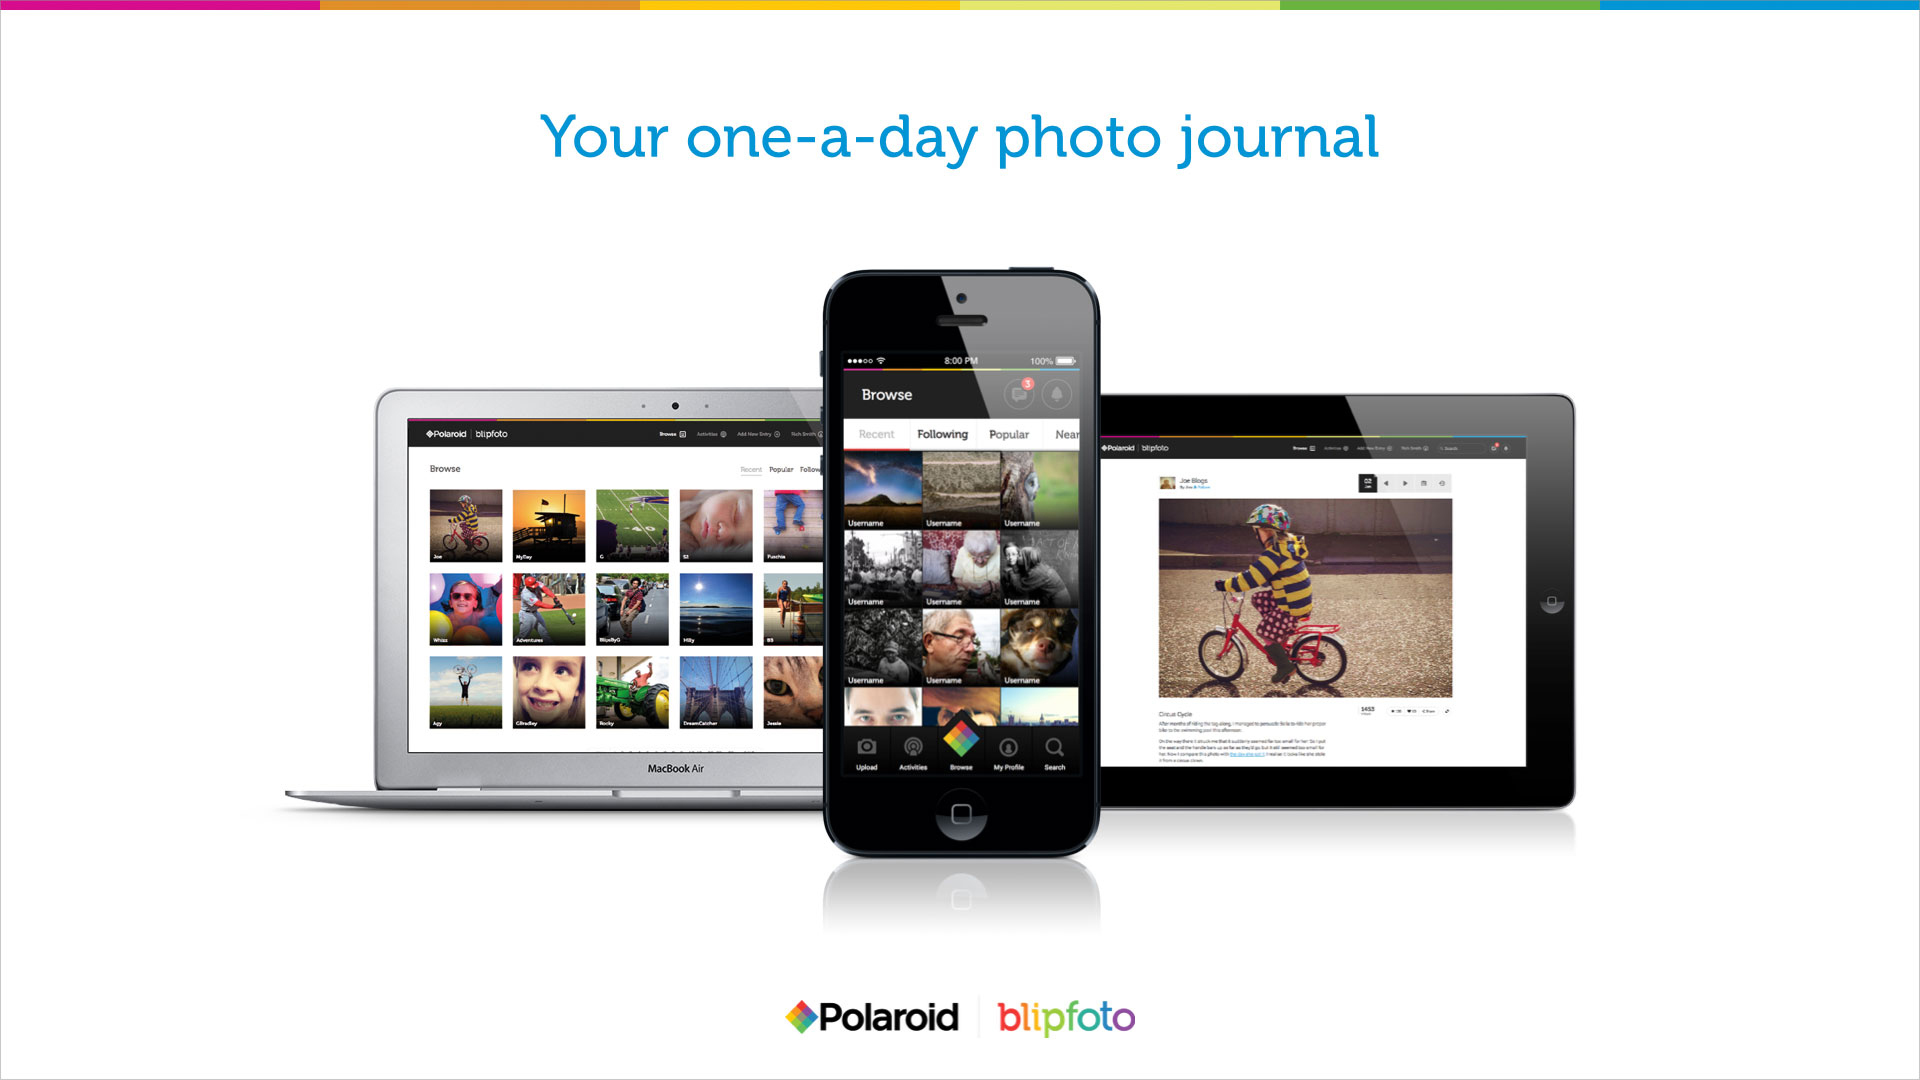 Polaroid takes a shot at photo-a-day journaling by rebranding Blipfoto